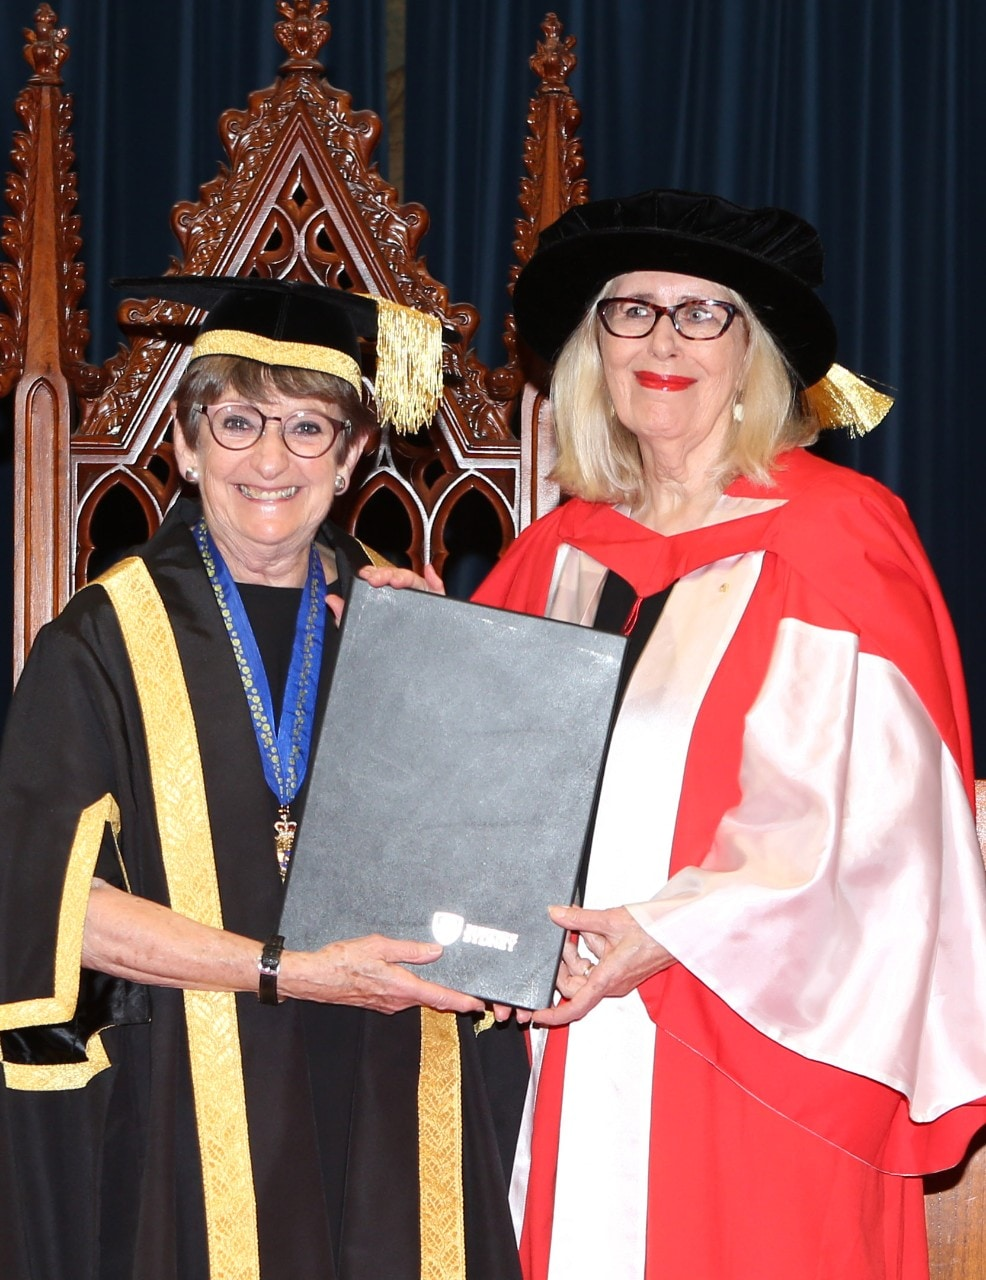 Pro-Chancellor, Mrs Dorothy Hoddinott AO presents a Doctor of Letters (honoris causa) to Dr Anne Summers Ao.